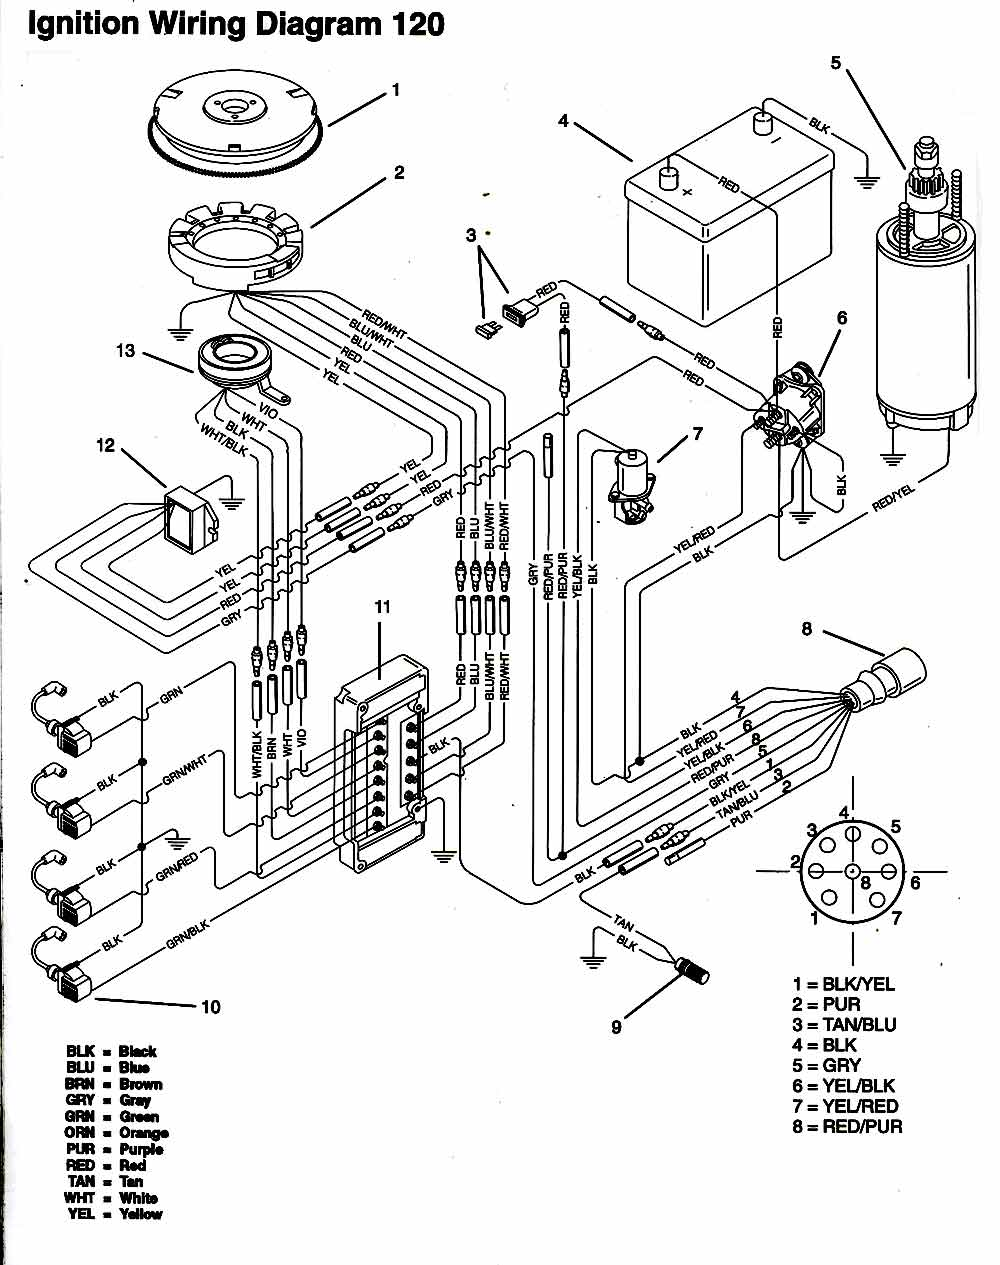 1989 mercury mariner wiring diagram